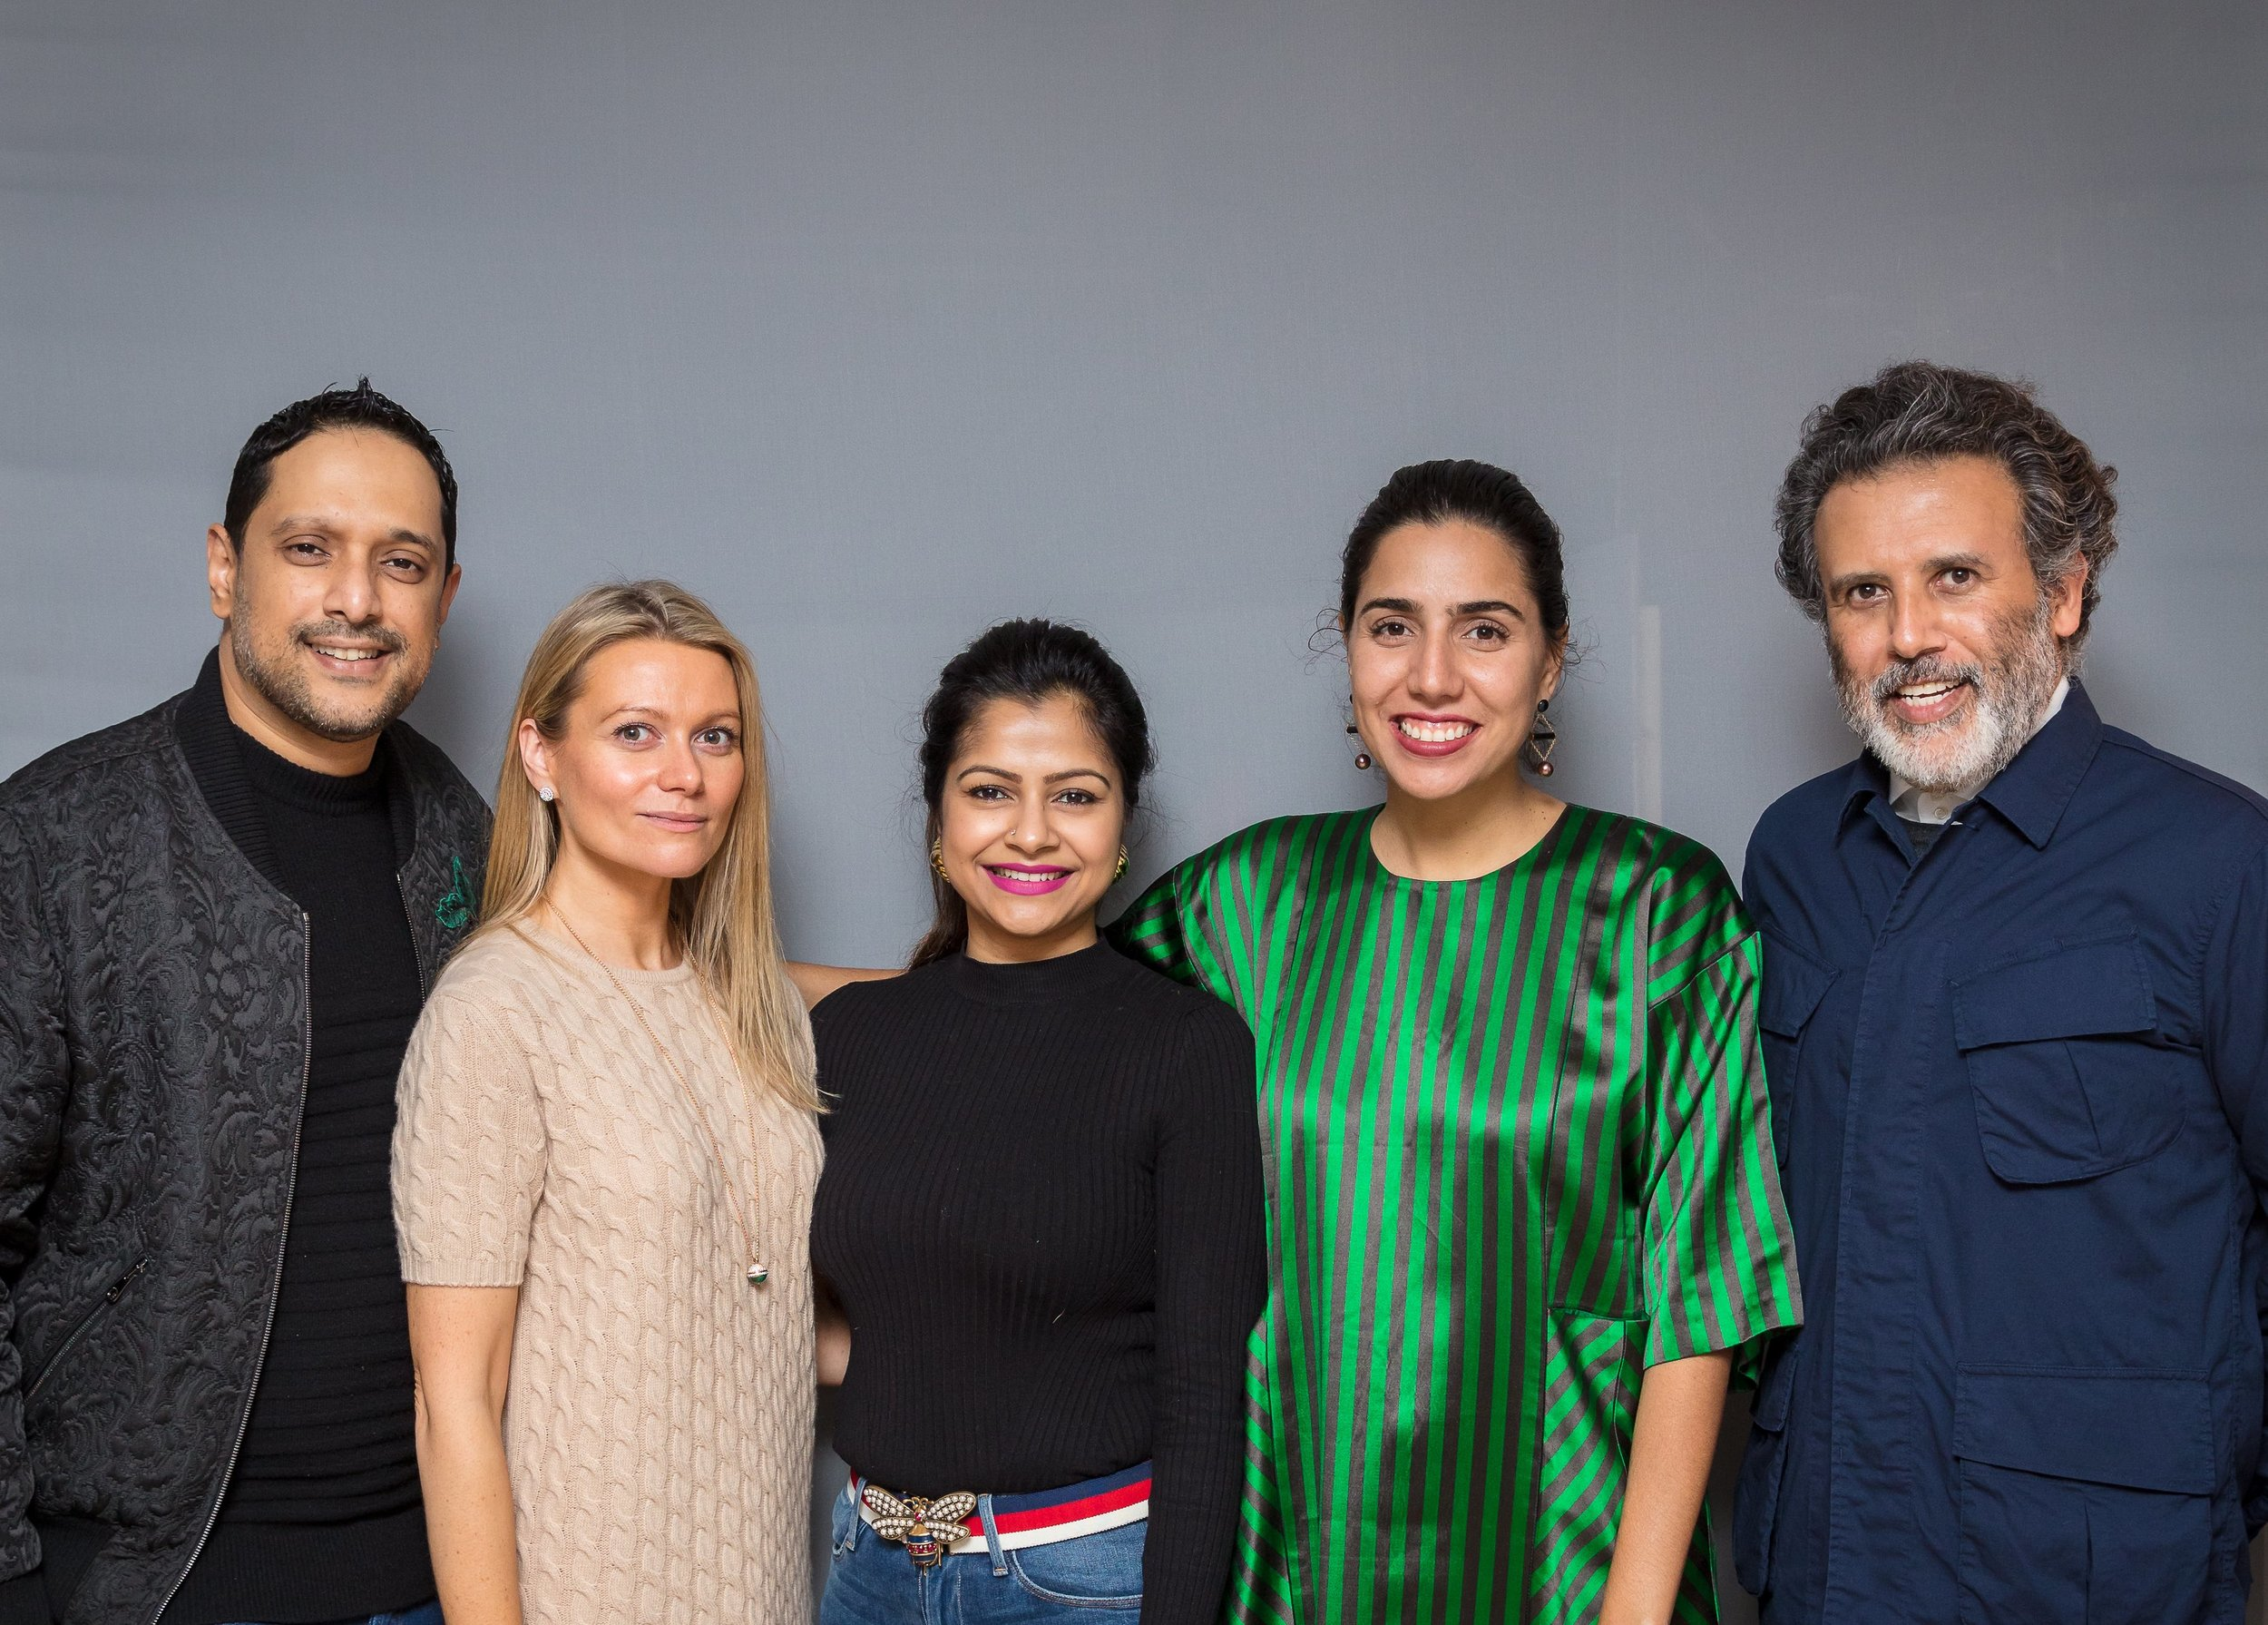 Pictured L-R: Rajeeb Samdani, Co-founder and Trustee of Samdani Art Foundation; Vilma Jurkute, Director of Alserkal Avenue; Nadia Samdani, Co-founder and President of Samdani Art Foundation; Diana Campbell Betancourt, Artistic Director of Samdani Art Foundation and Chief Curator of Dhaka Art Summit; Abdelmonem Bin Eisa Alserkal, Founder of Alserkal Avenue, Alserkal Programming and Alserkal Residency. Photo credit Dan Weill.